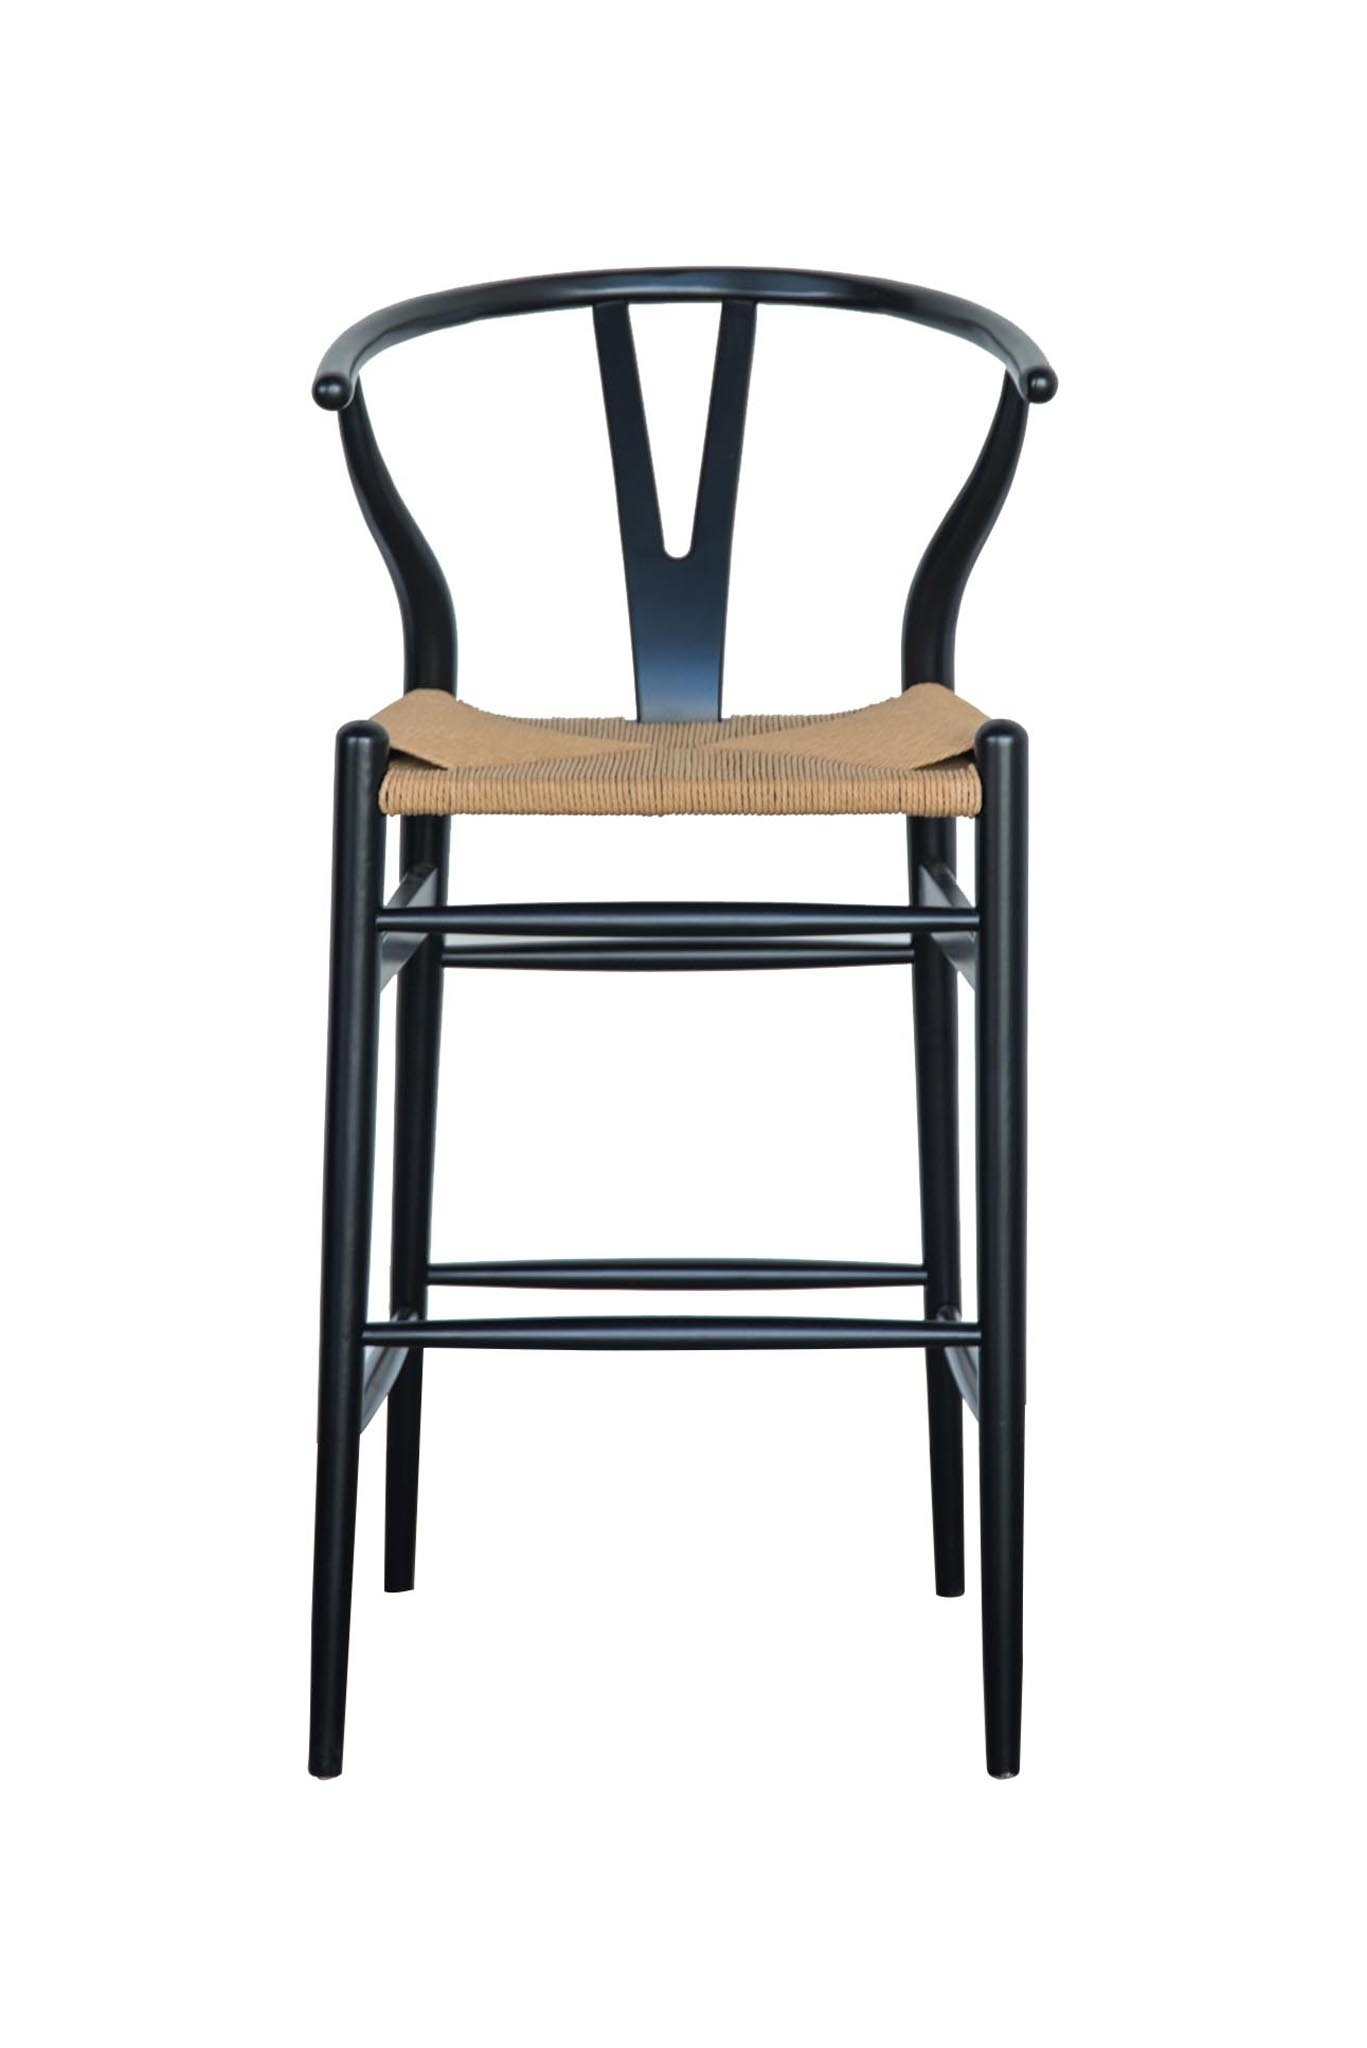 white wishbone chair replica comfortable patio chairs bar stool – white, beech, chestnut and black abide interiors